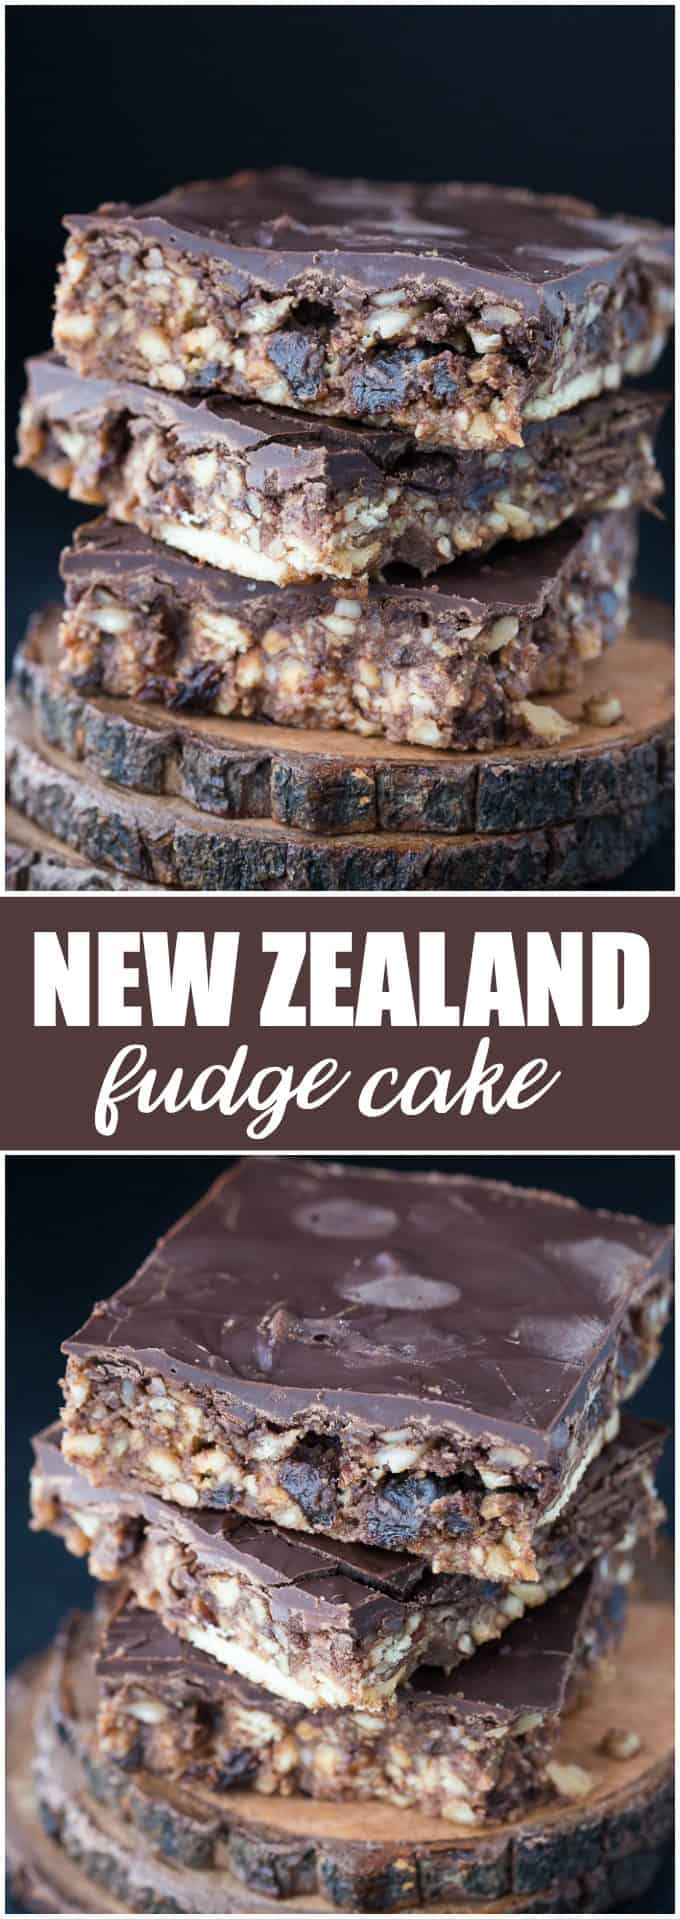 New Zealand Fudge Cake - A simple, no-bake dessert made with raisins, nuts, cookies and lots of chocolate!